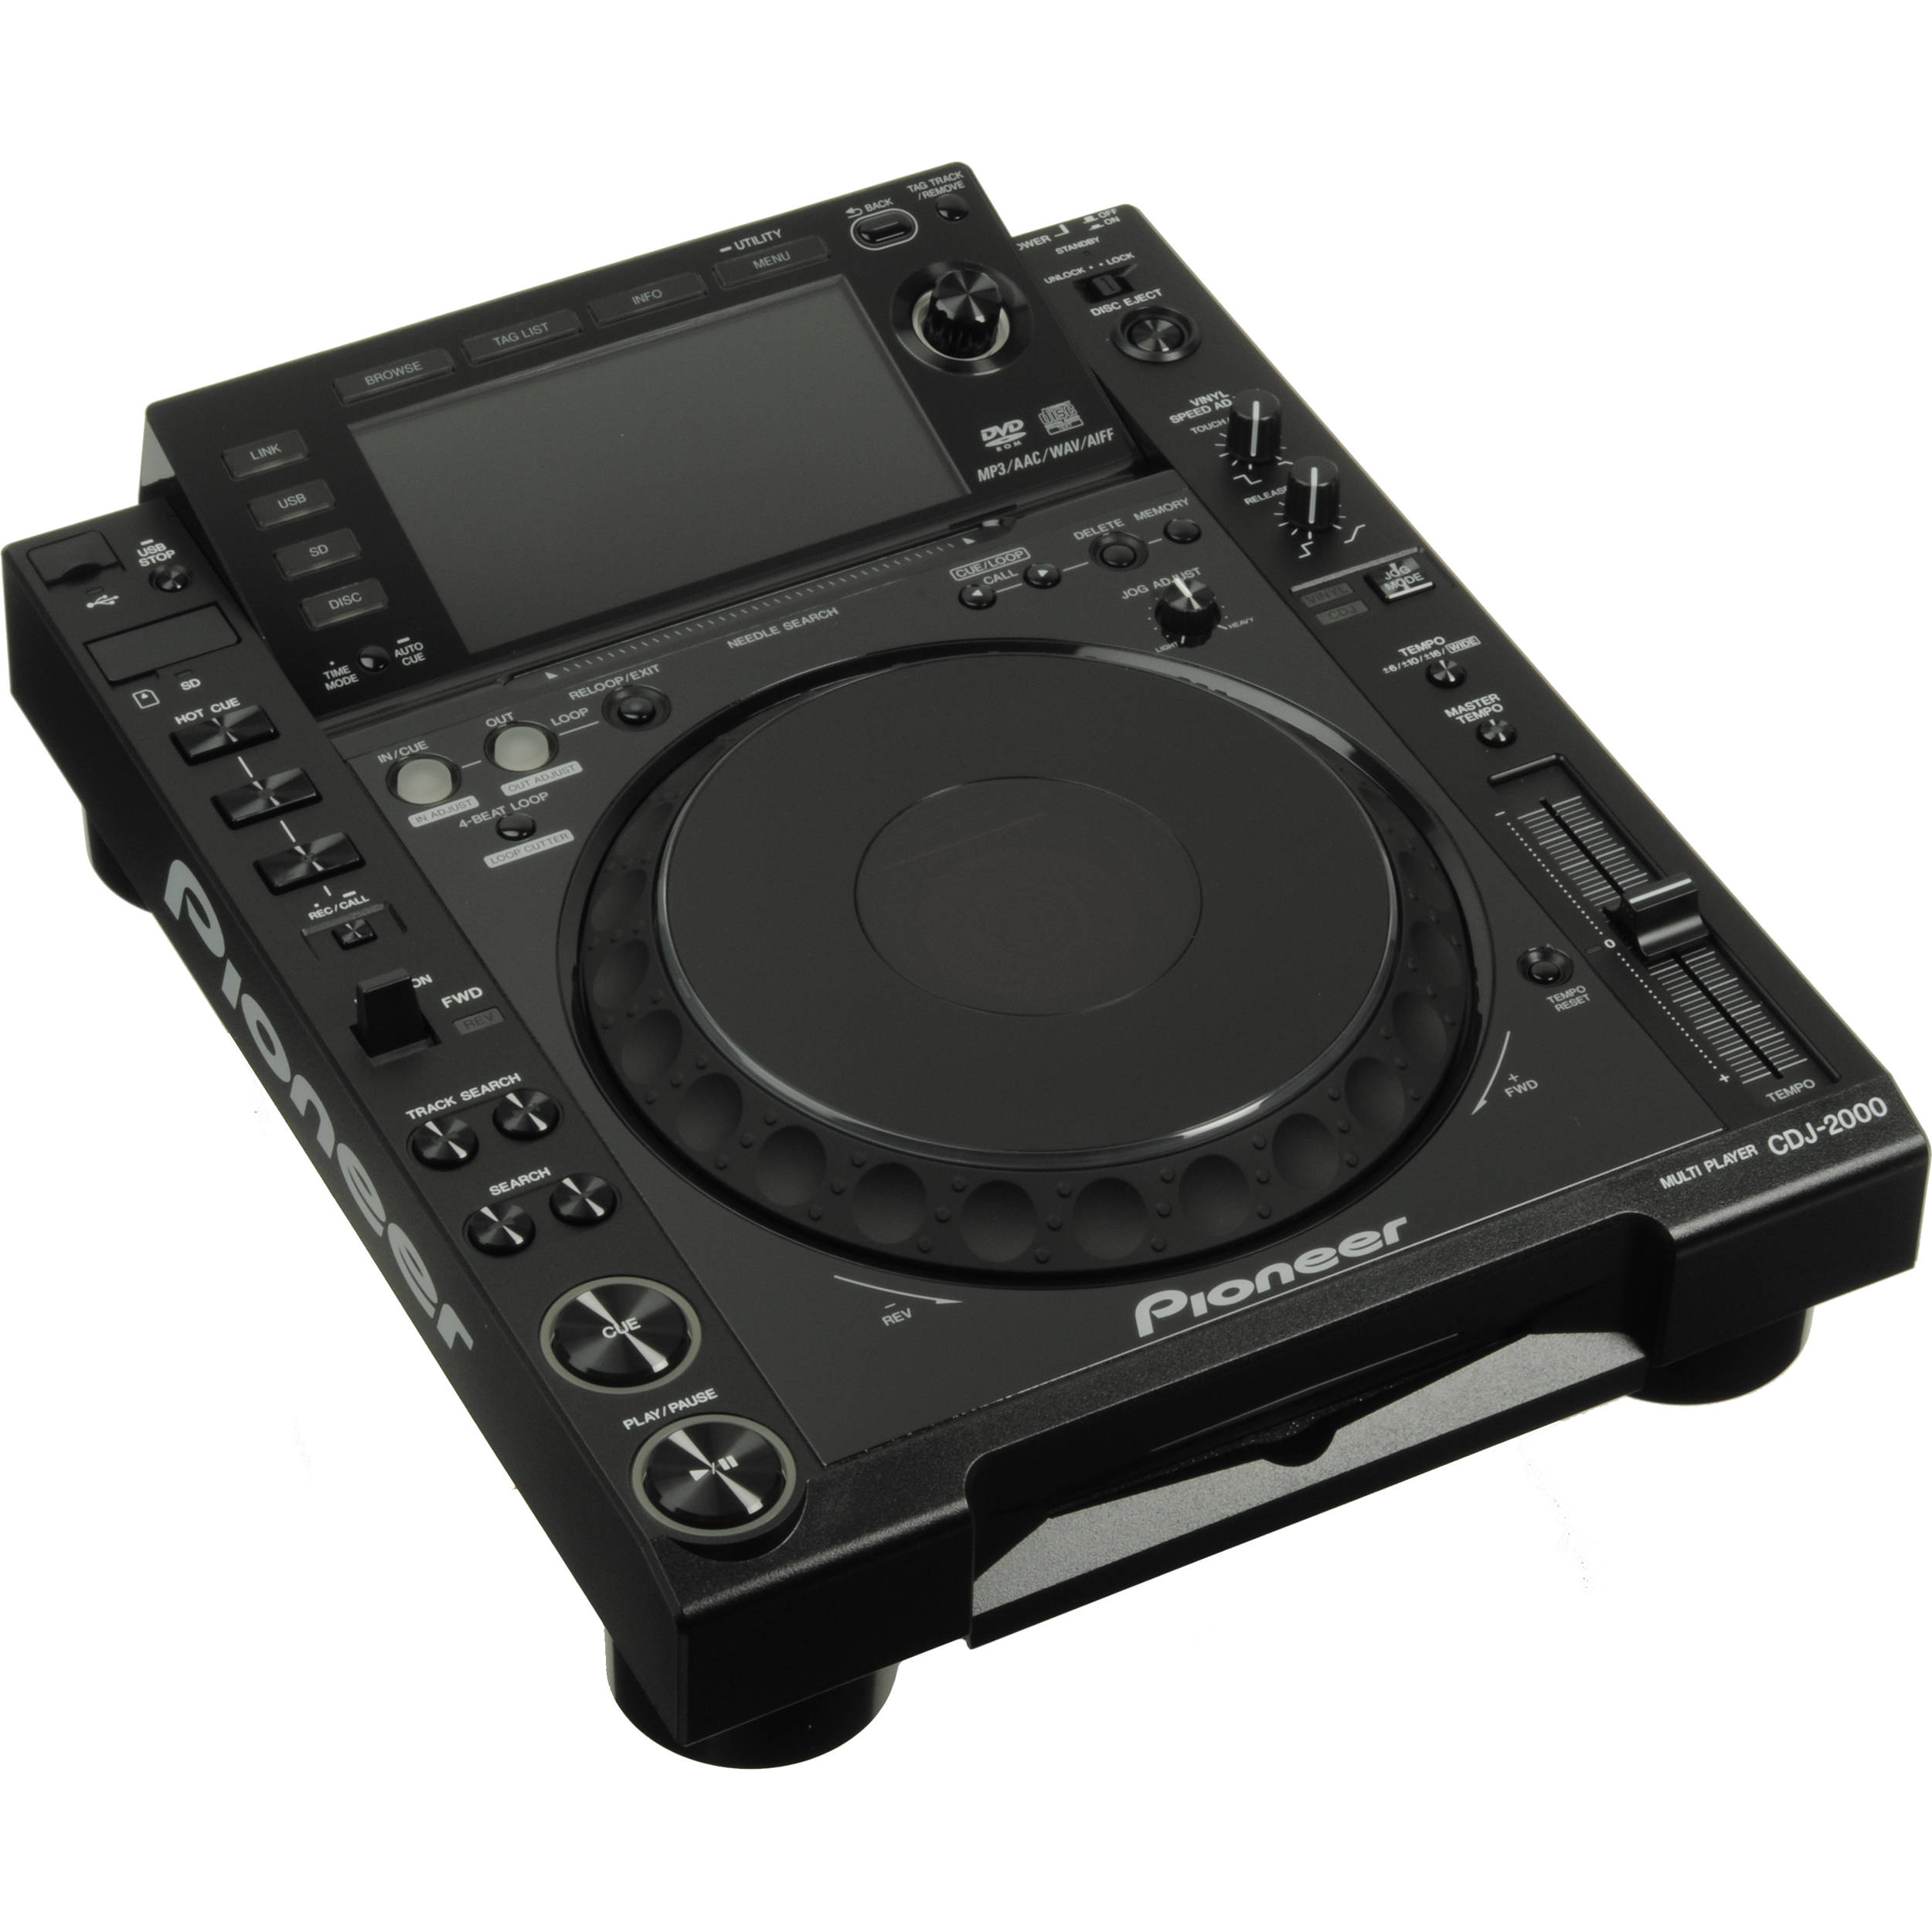 pioneer cdj 2000 professional multimedia and cd player cdj 2000. Black Bedroom Furniture Sets. Home Design Ideas